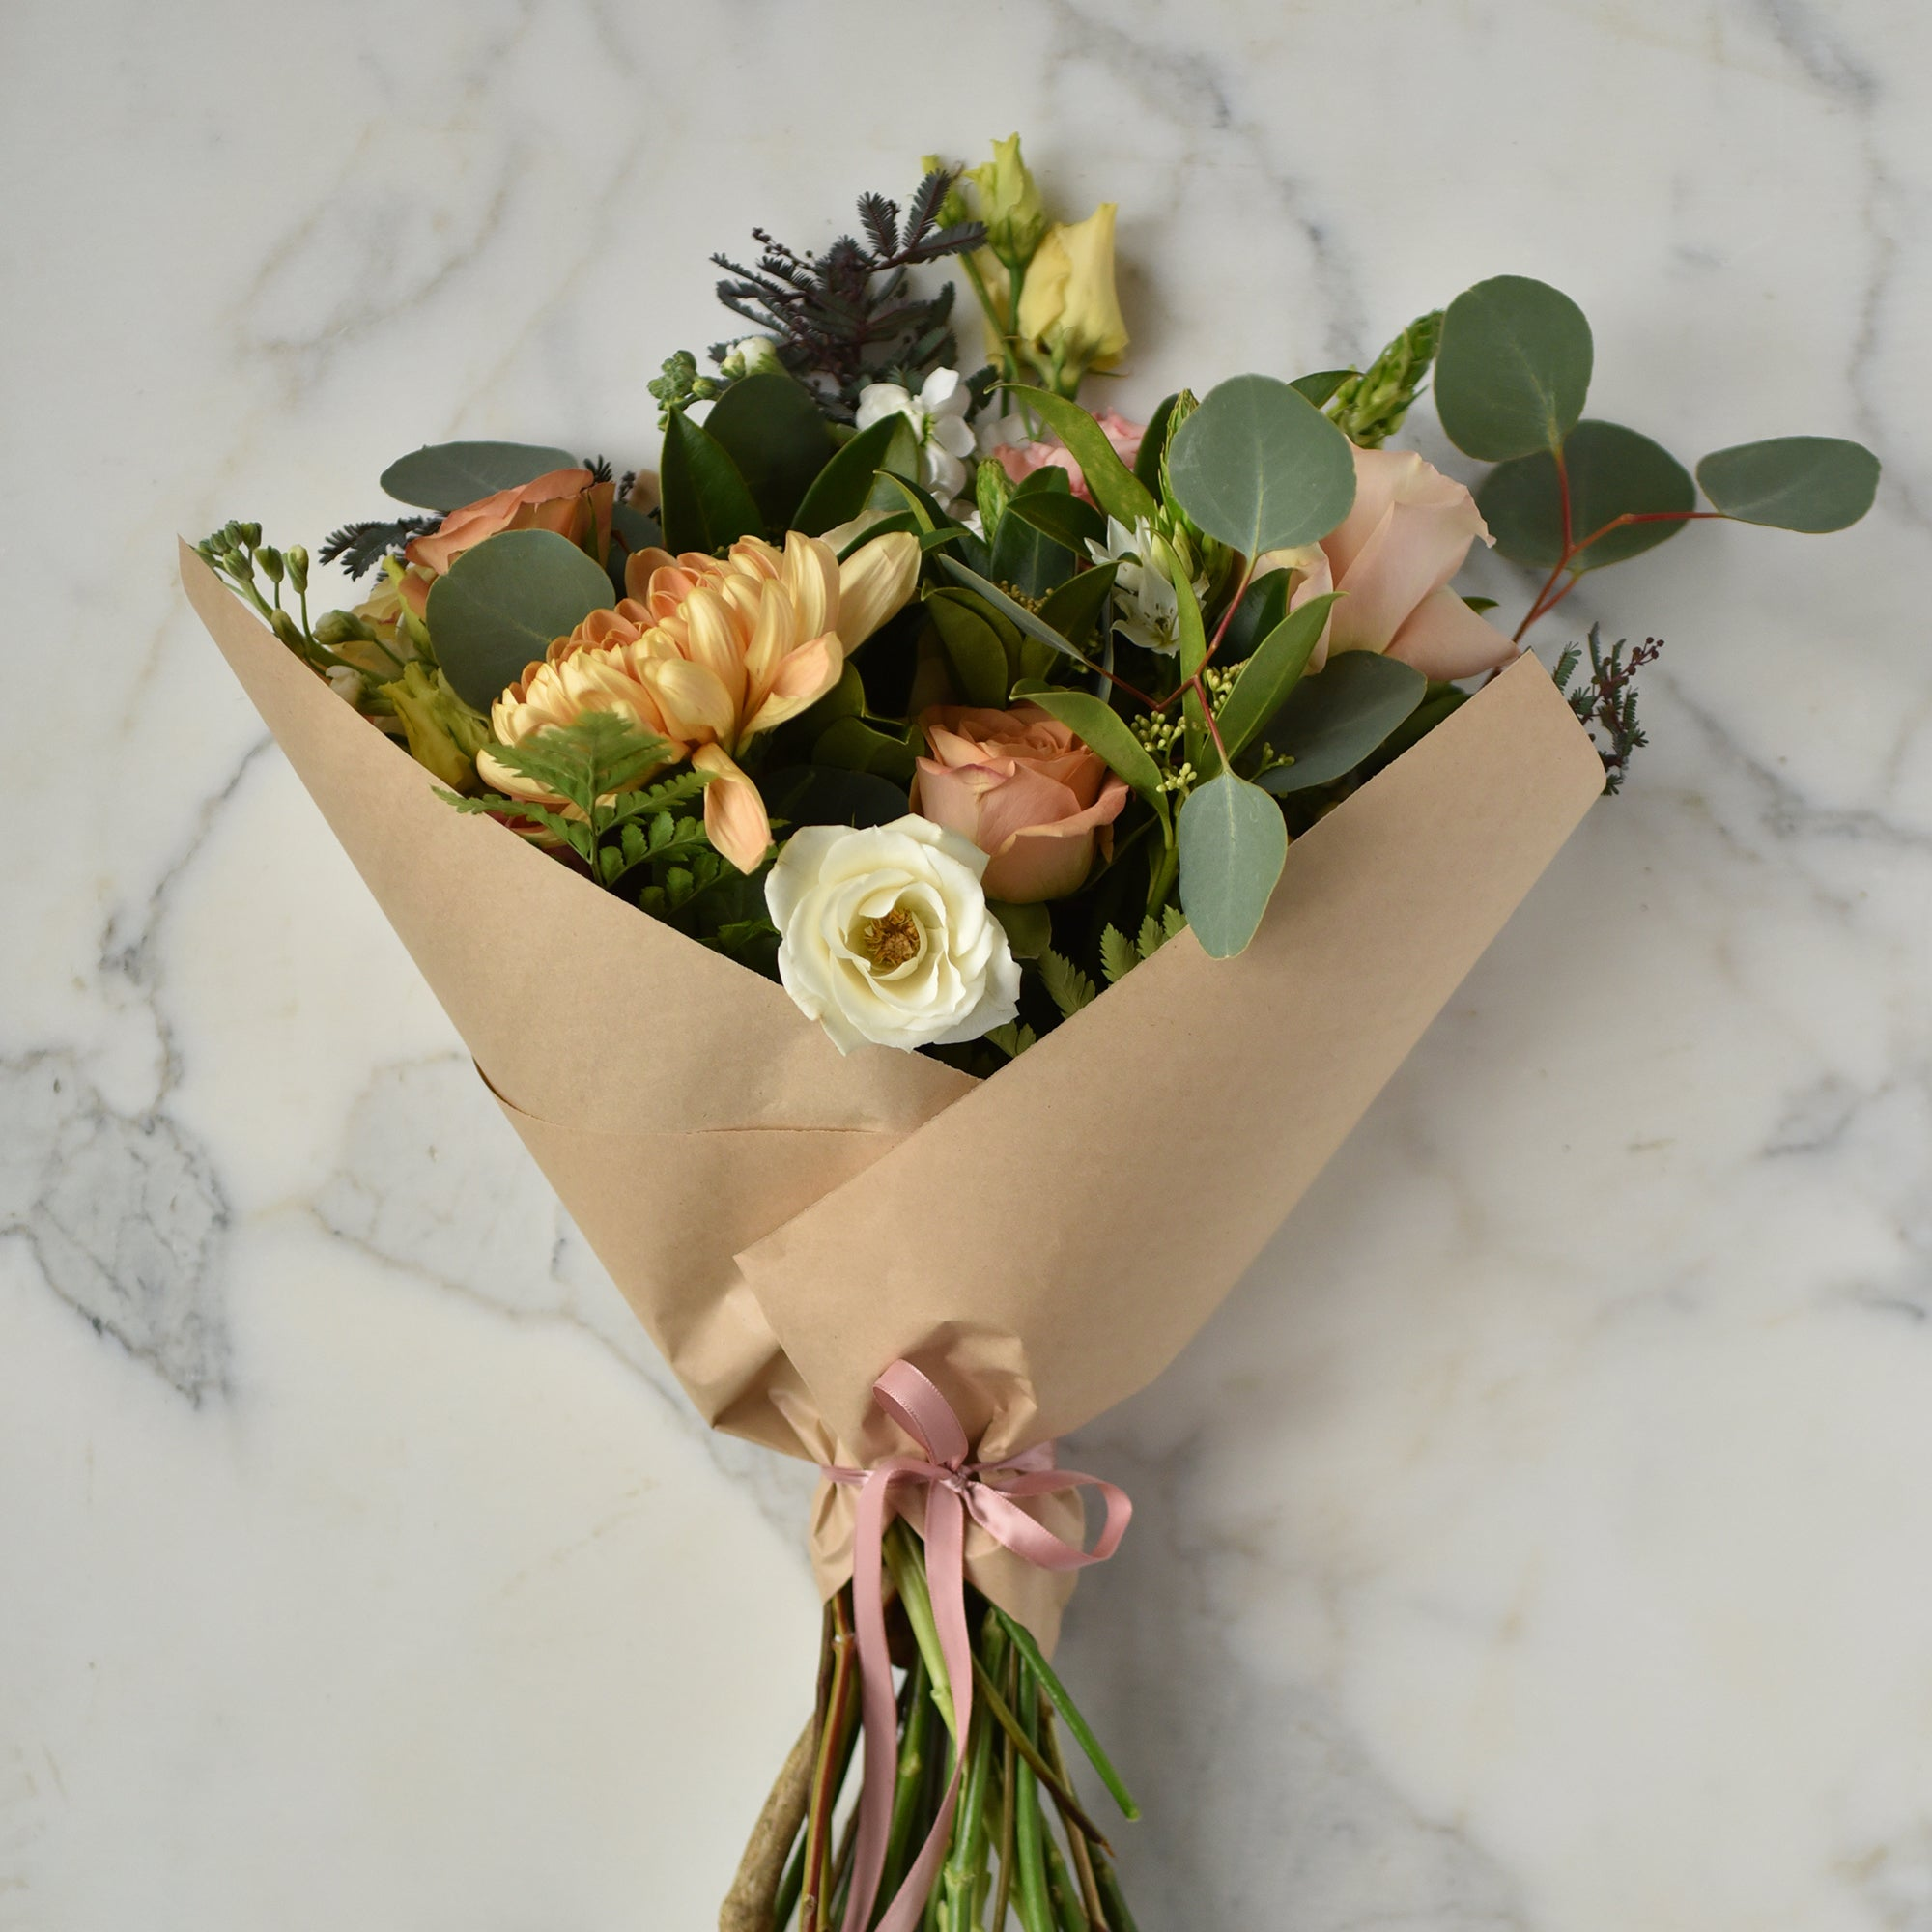 Garden-Style Hand-Tied Bouquet Workshop (Toronto) January 19th, 2020